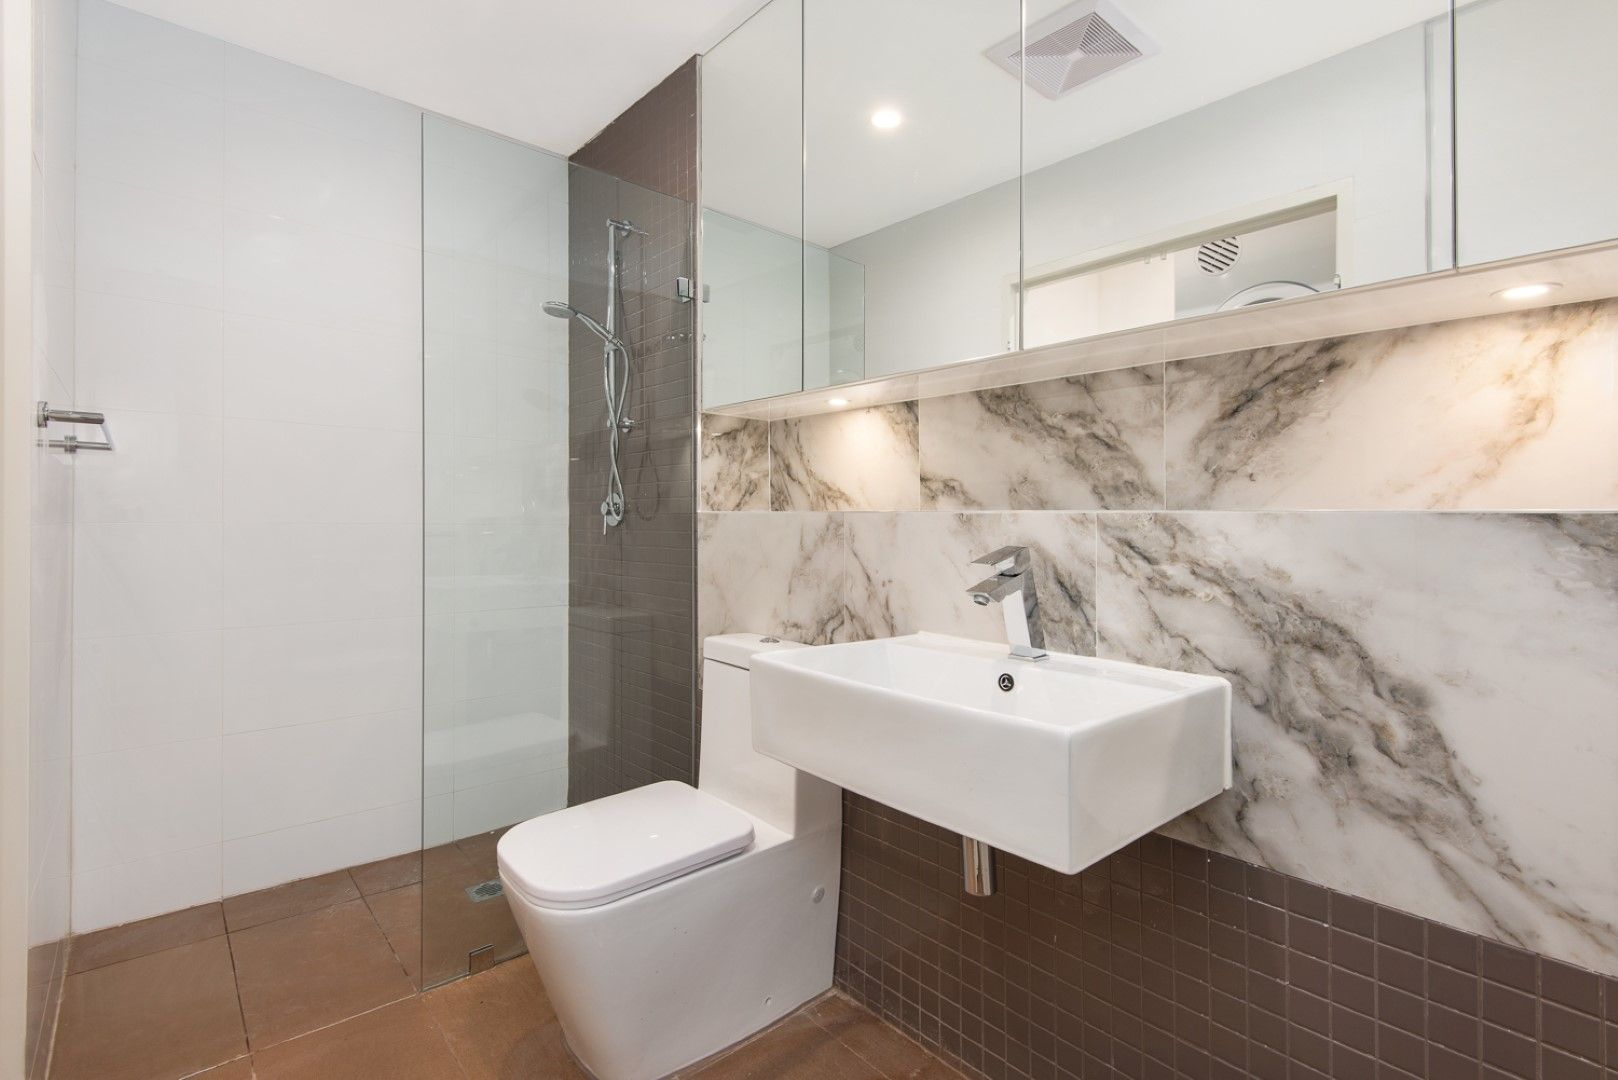 312/1 Allengrove Cre, Macquarie Park NSW 2113, Image 2